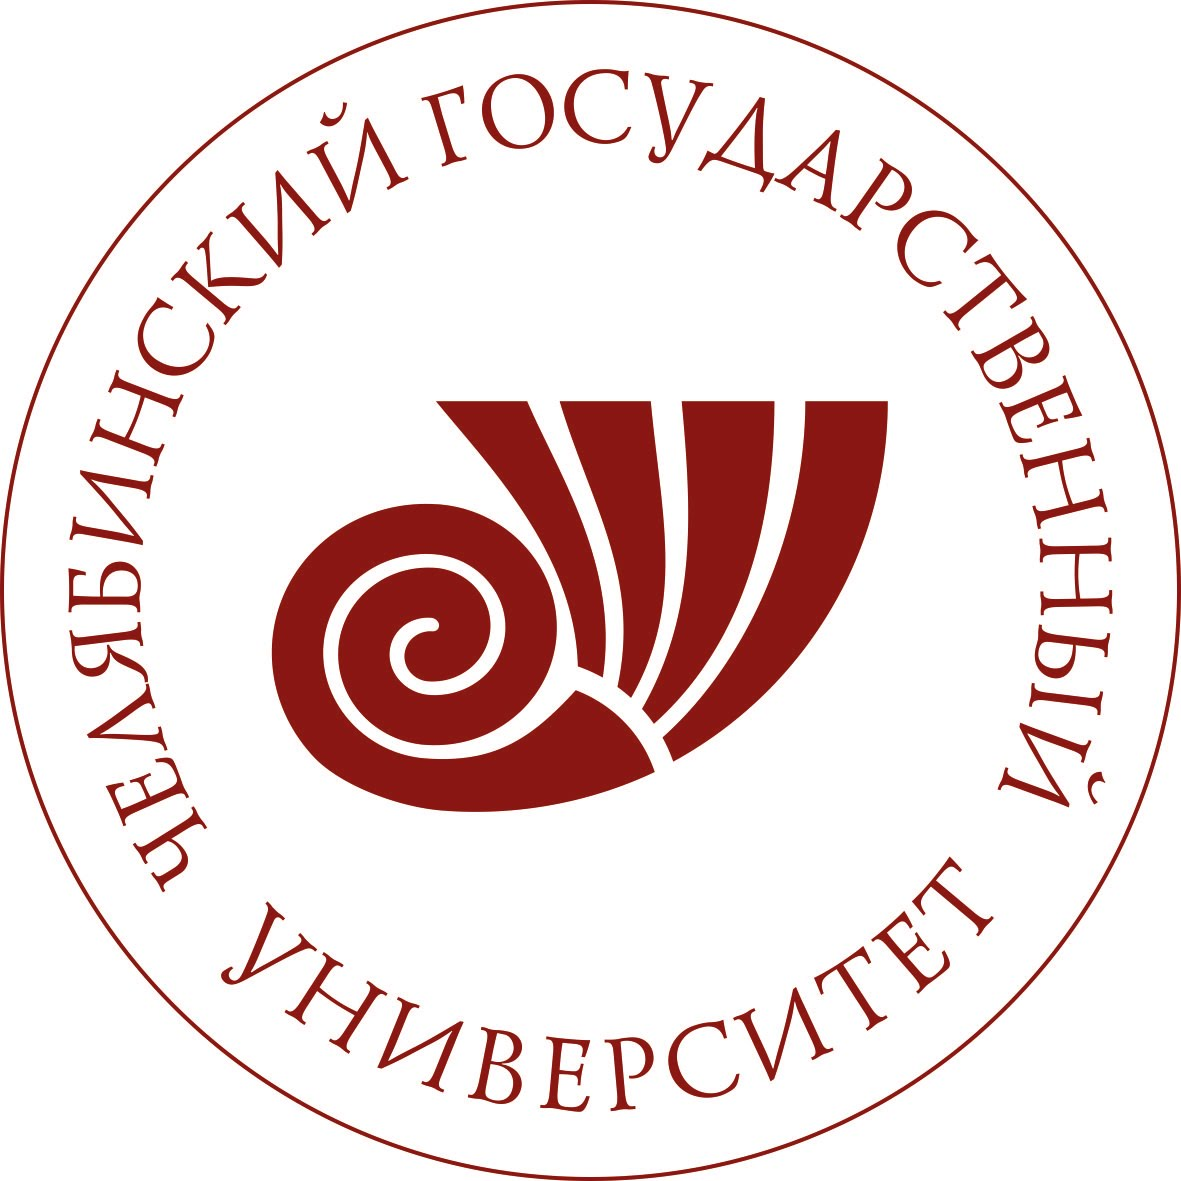 http://www.csu.ru